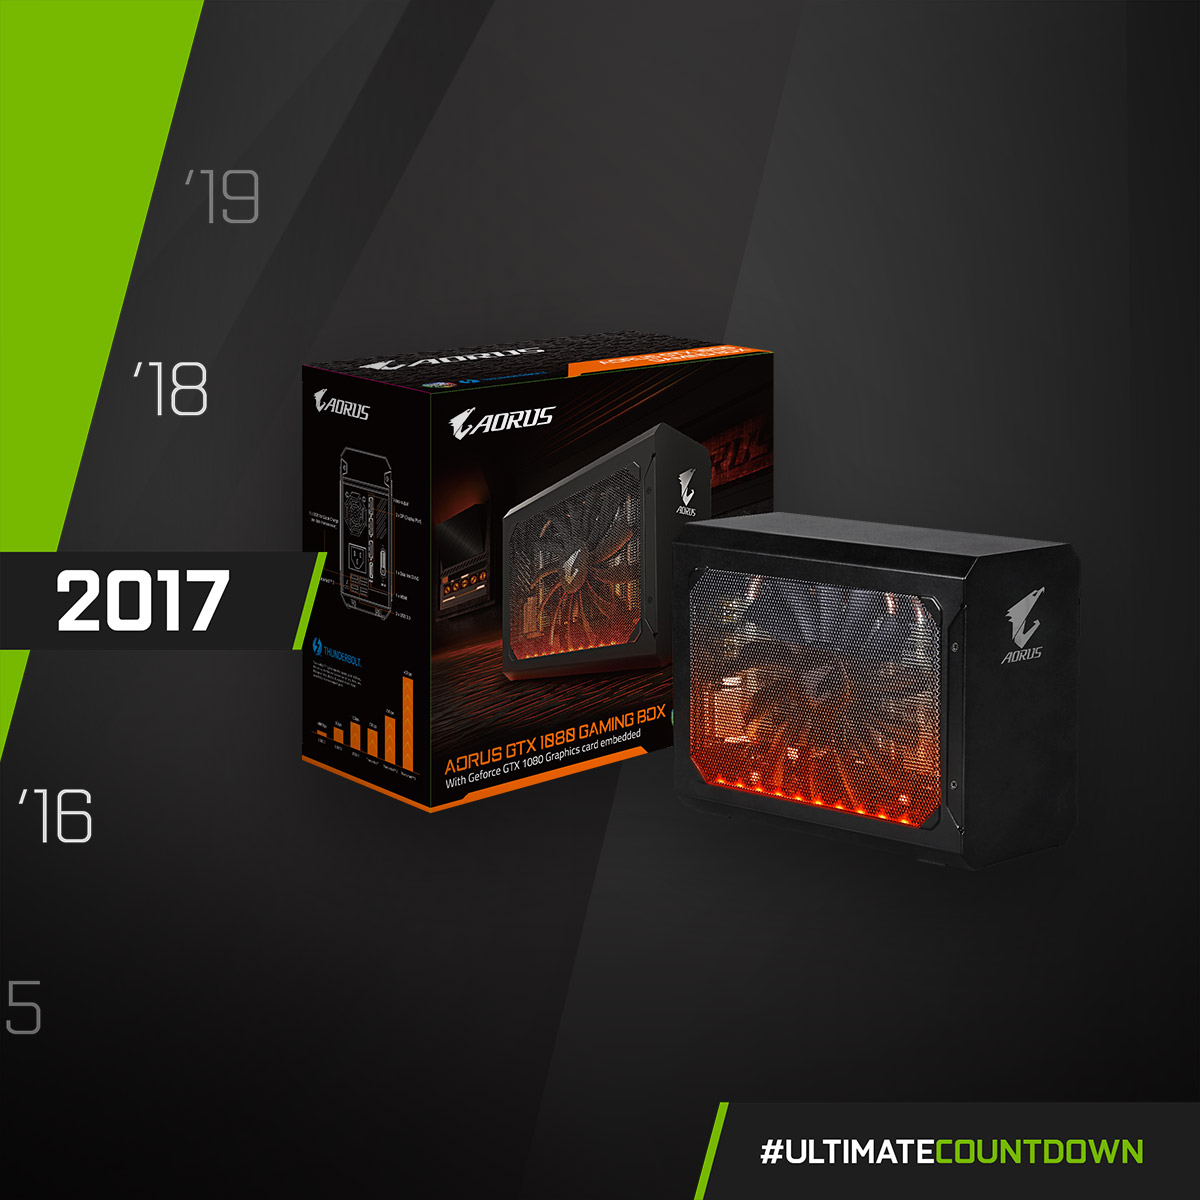 Tiny but mighty! AORUS launched the GAMING BOX - a full feature ready-to-go eGPU, equipped with NVIDIA GeForce GTX 1080 and 1070 graphics!  #UltimateCountdown #UltimateAORUS #GIGABYTE https://t.co/QMZWY6TC8Z